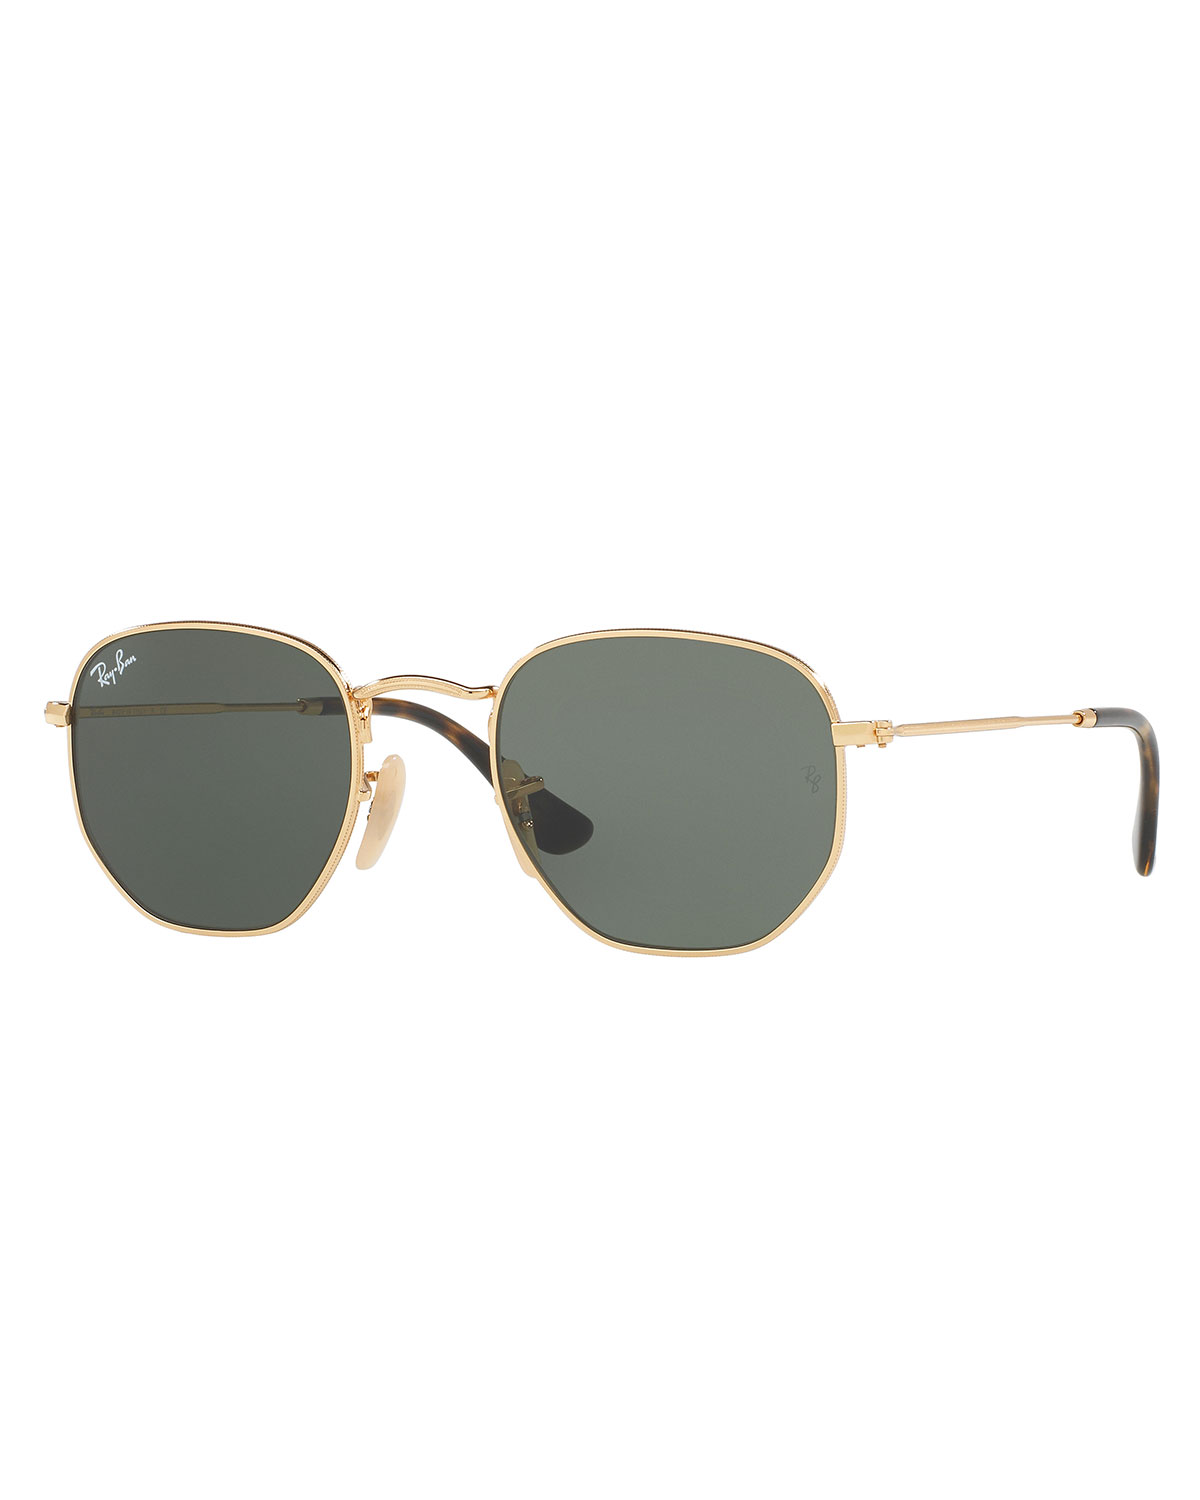 Ray-Ban Men's Hexagonal Metal Sunglasses, Green/Gold